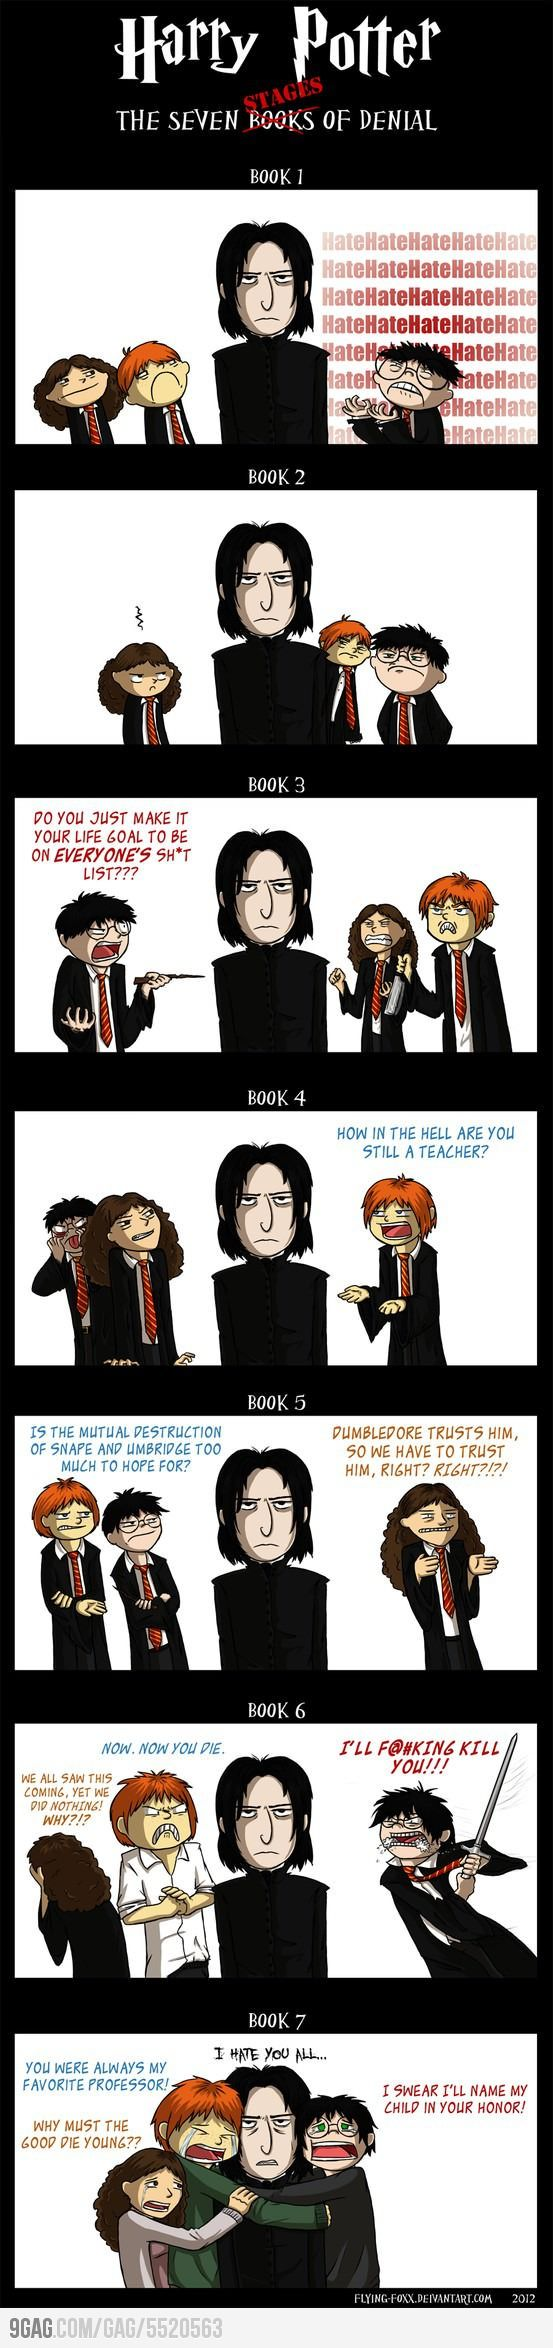 I love Ron's hair in book 4 (and book three's knife).  And Hermione's reaction in book 5 -7.  And and Harry is just generally hilarious.